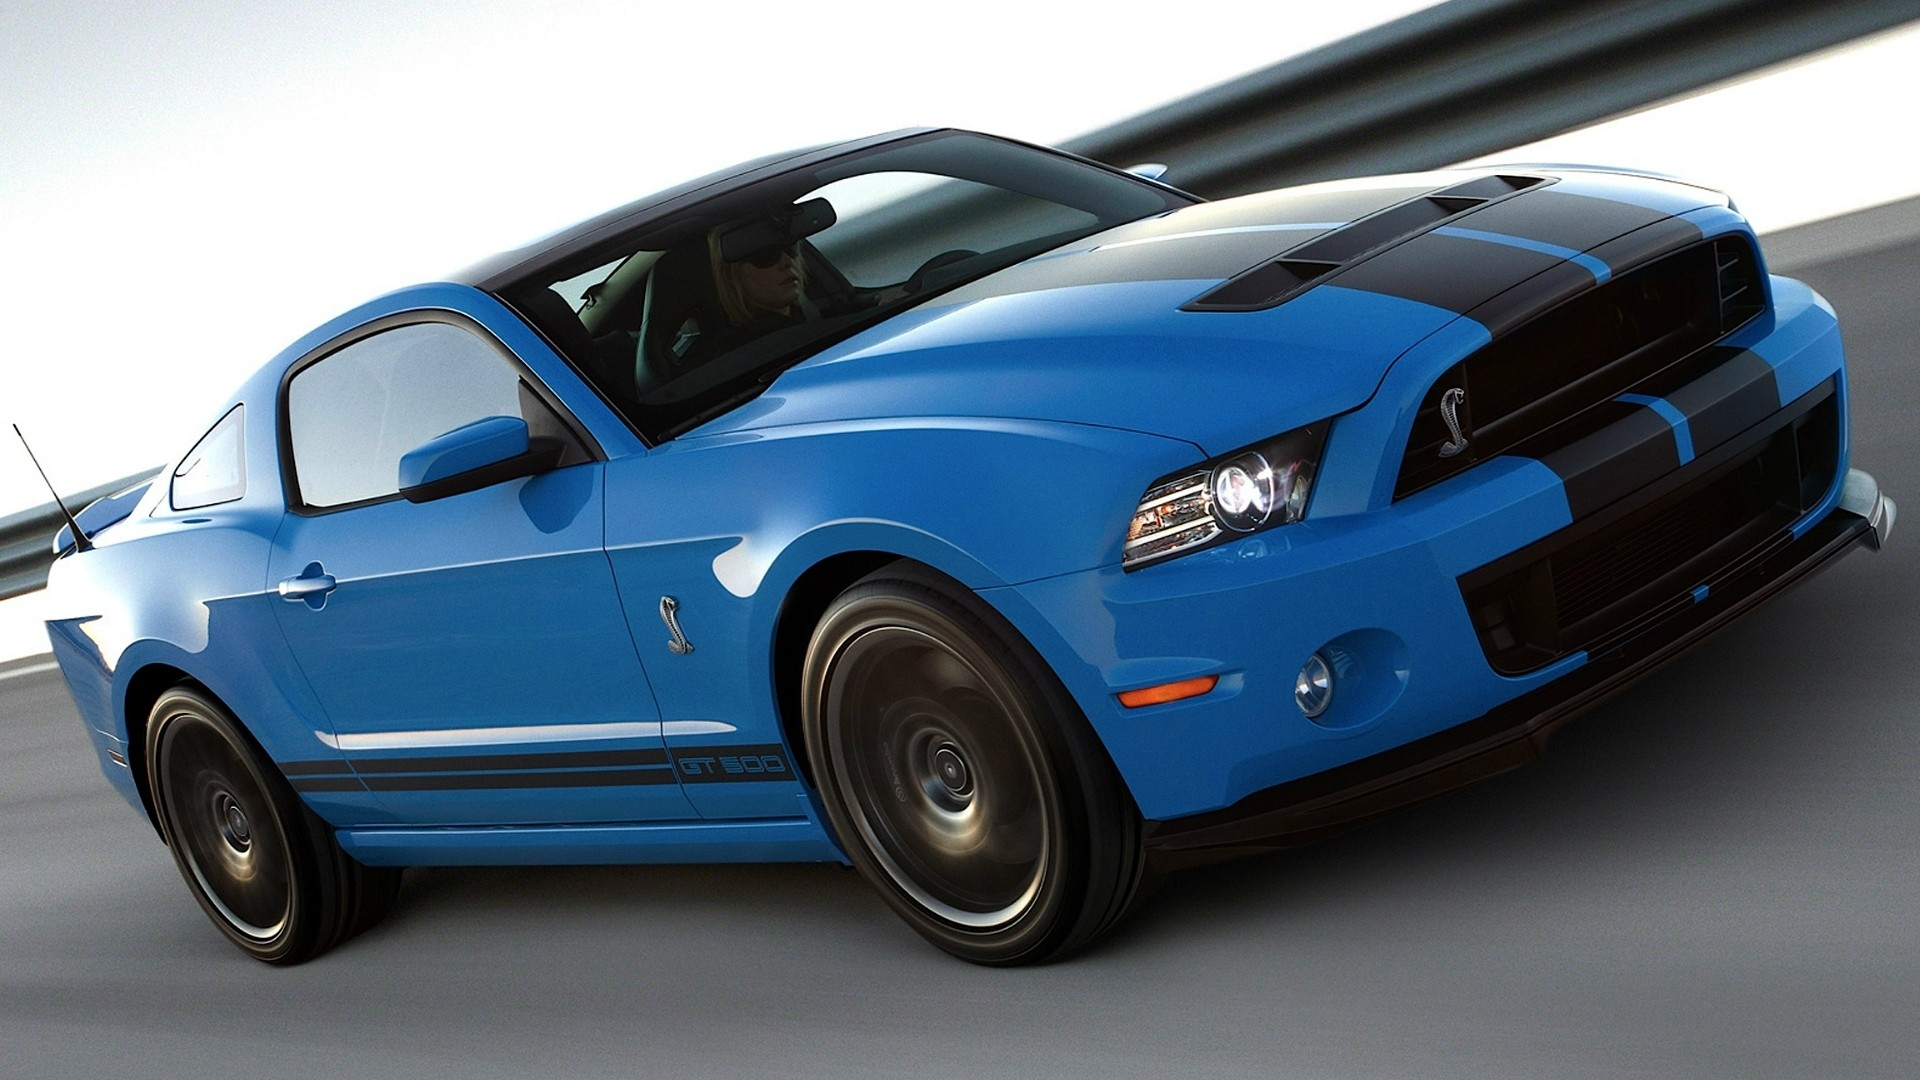 ford mustang shelby gt500 hd wallpaper 2013 ford mustang shelby gt500 - Mustang 2014 Black Wallpaper